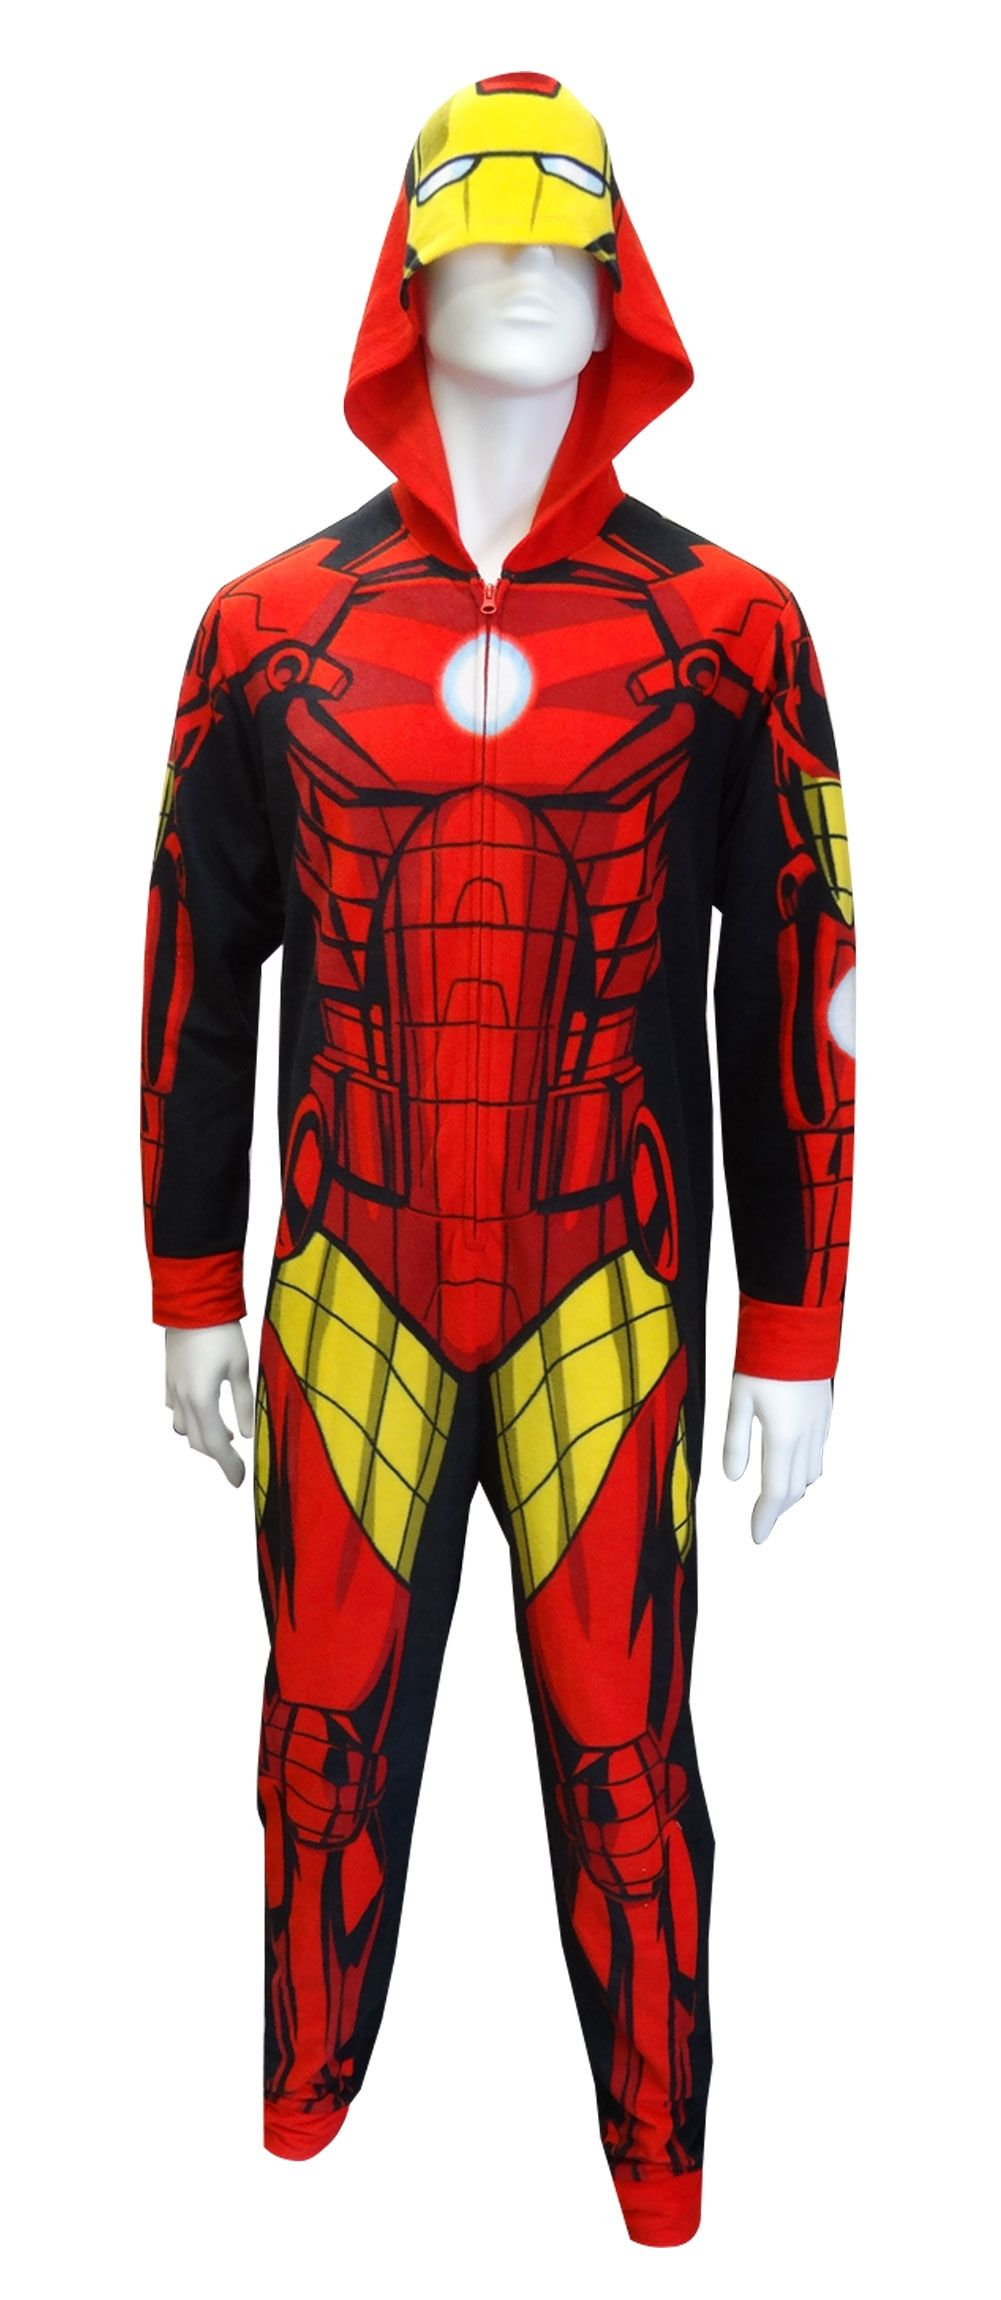 3afac1ec7 Hooded Marvel Comics Iron Man Onesie Pajama Looking to express your ...